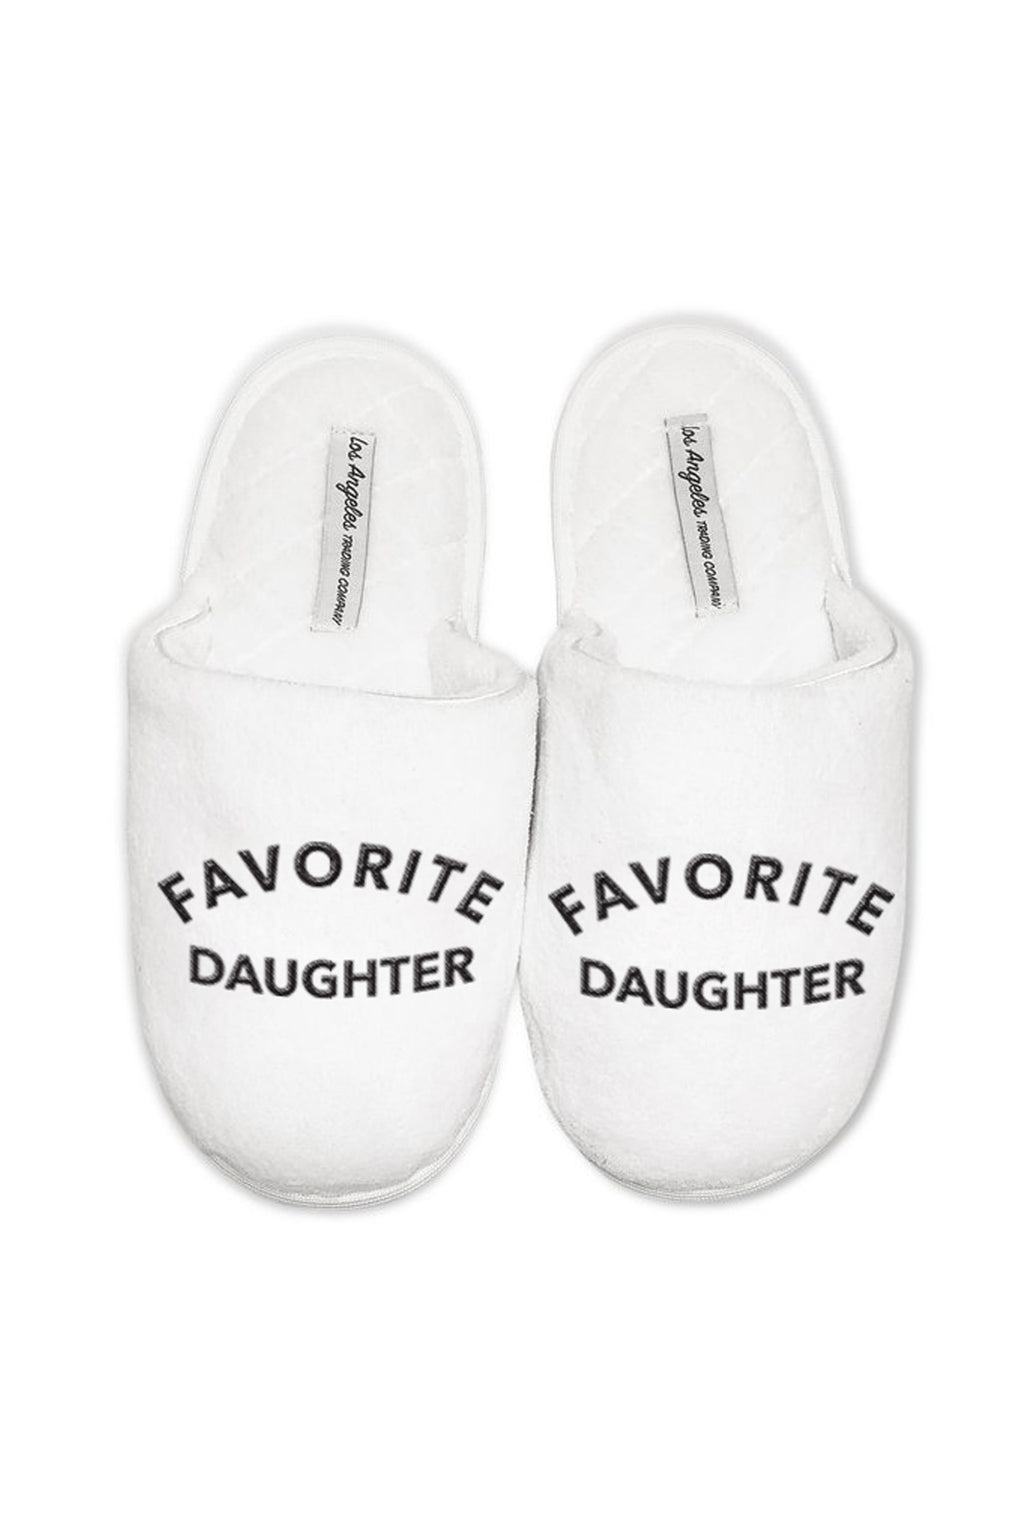 Women's White Slippers - Favorite Daughter